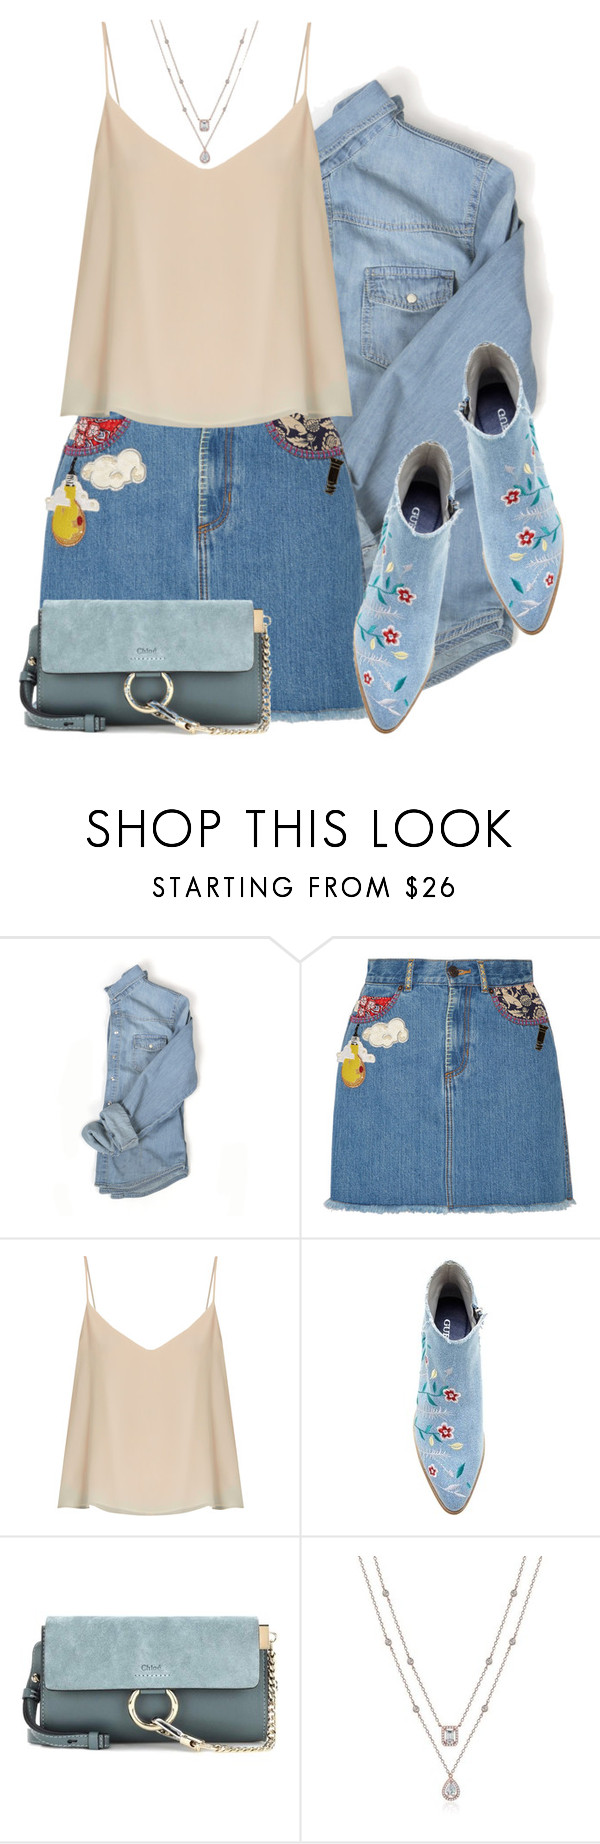 """Без названия #3489"" by ekozlova ❤ liked on Polyvore featuring Marc Jacobs, Raey and Chloé"